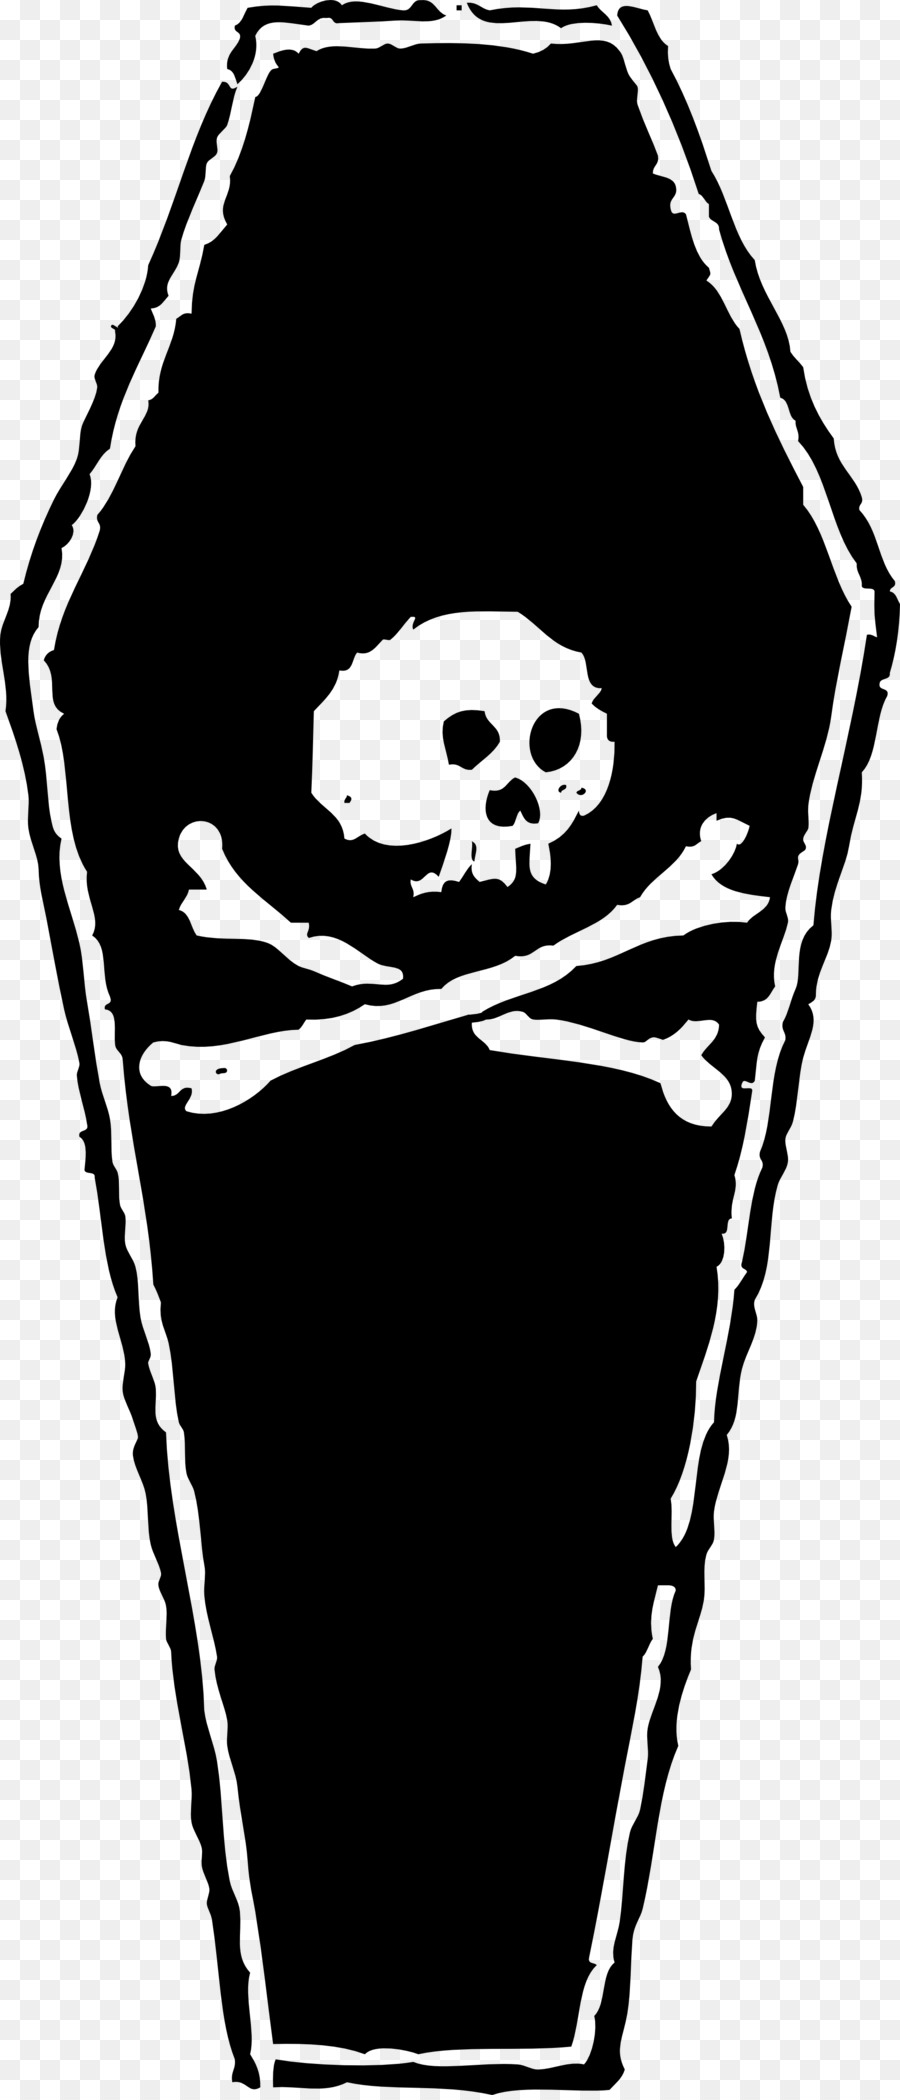 Skull Cartoon clipart.